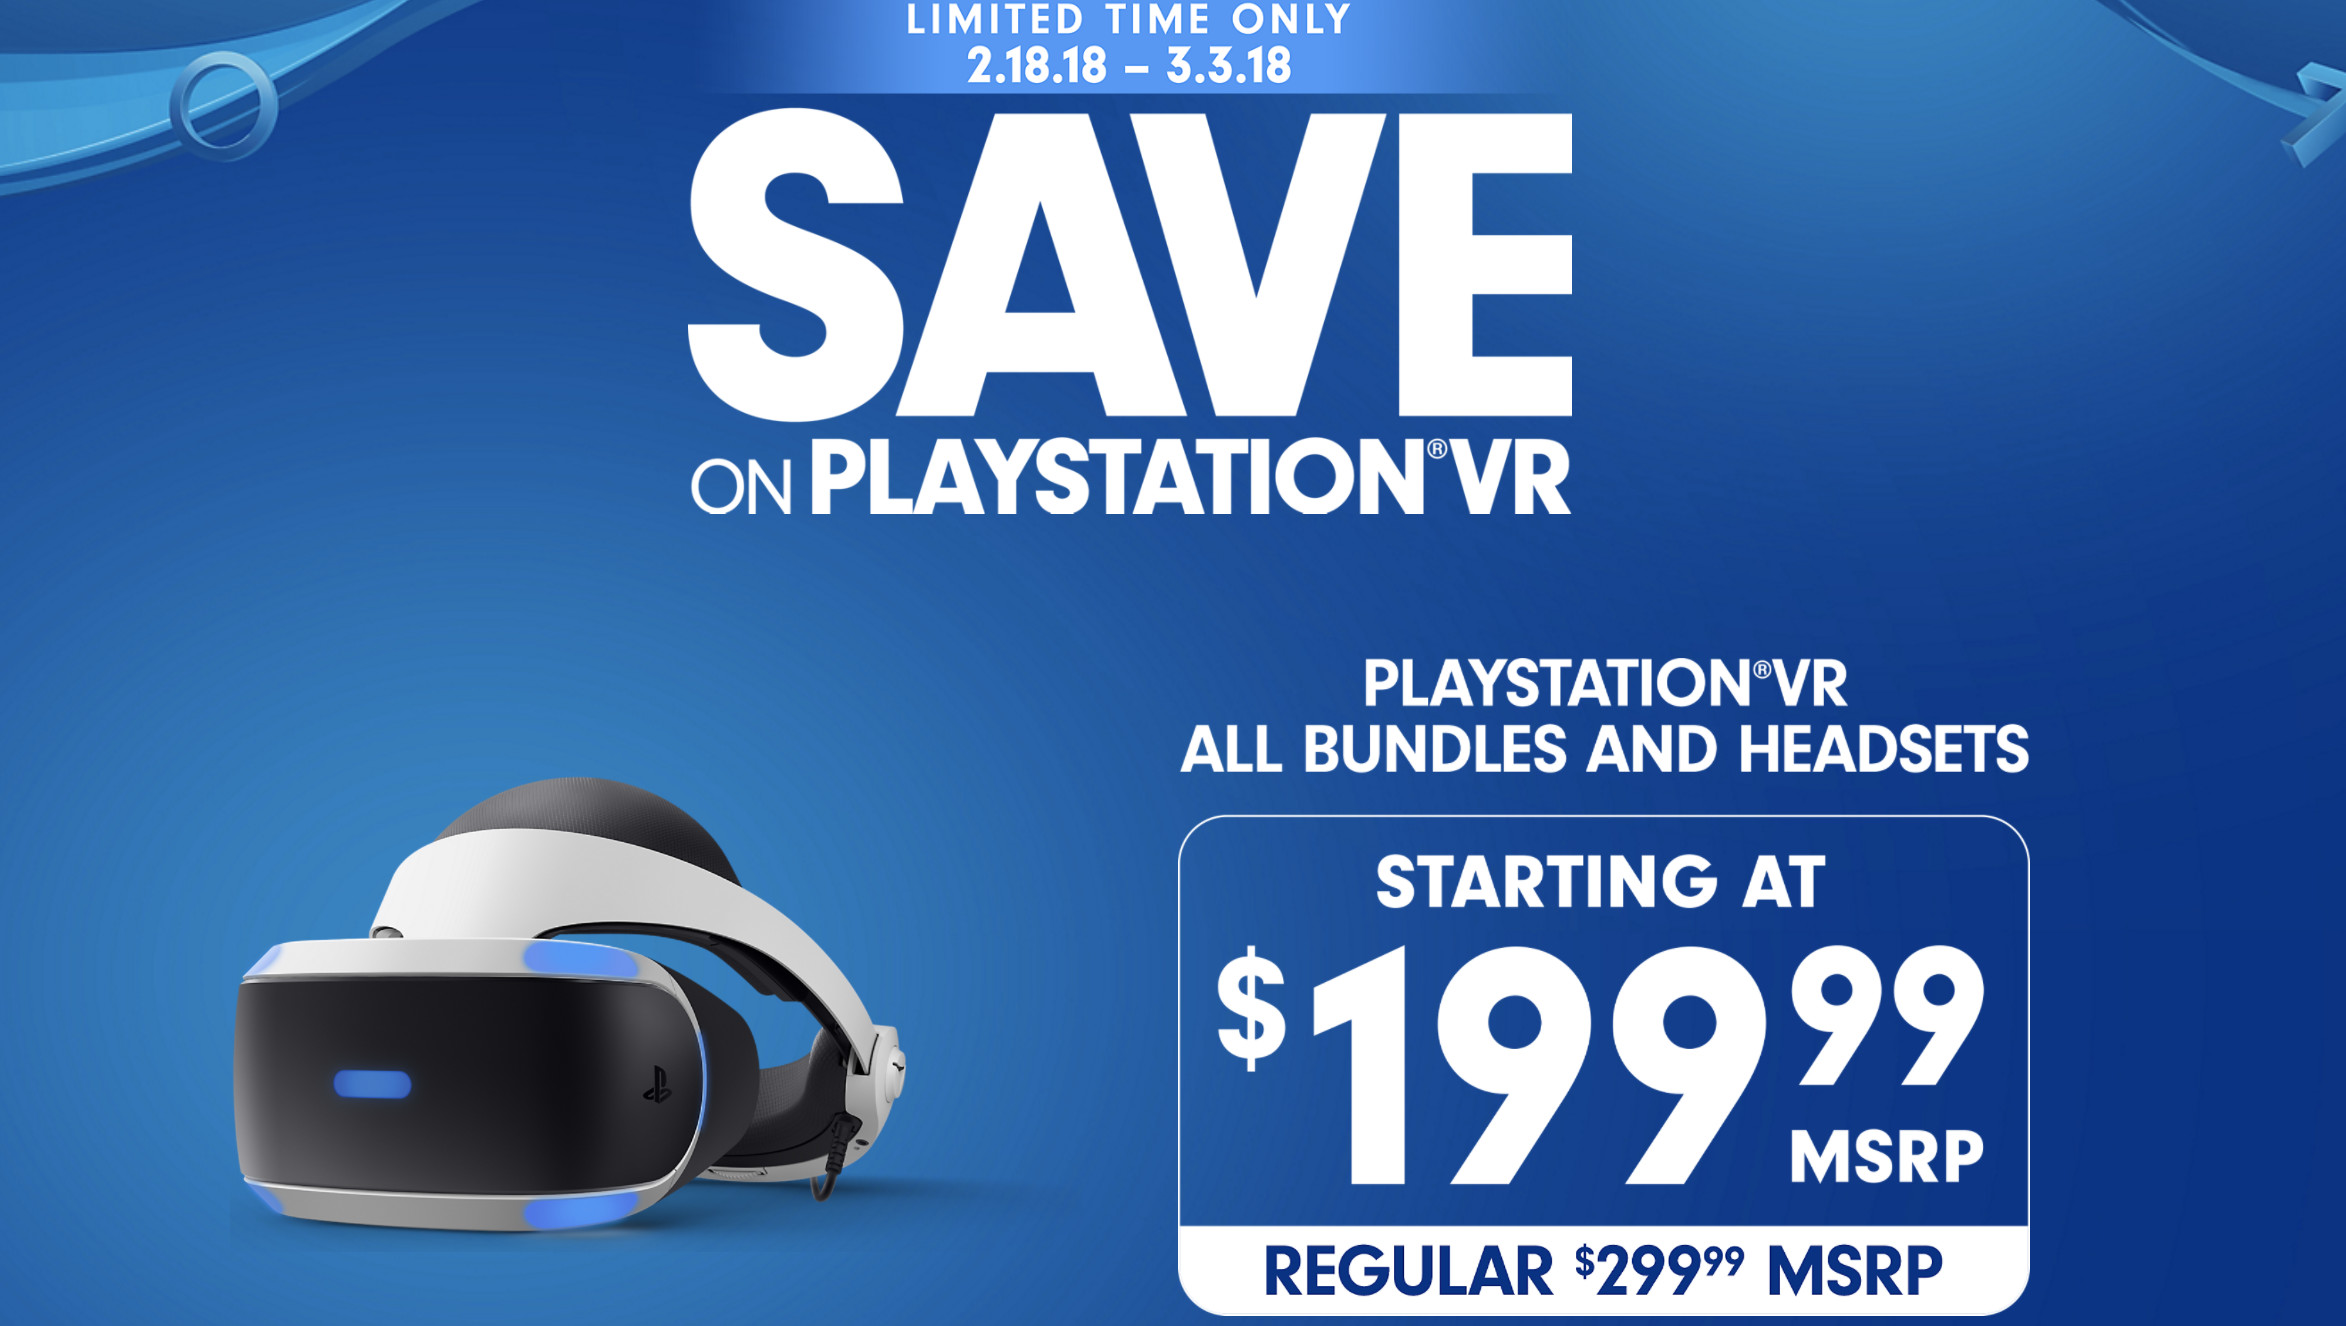 Sony Announces New PlayStation VR Deals and Bundles